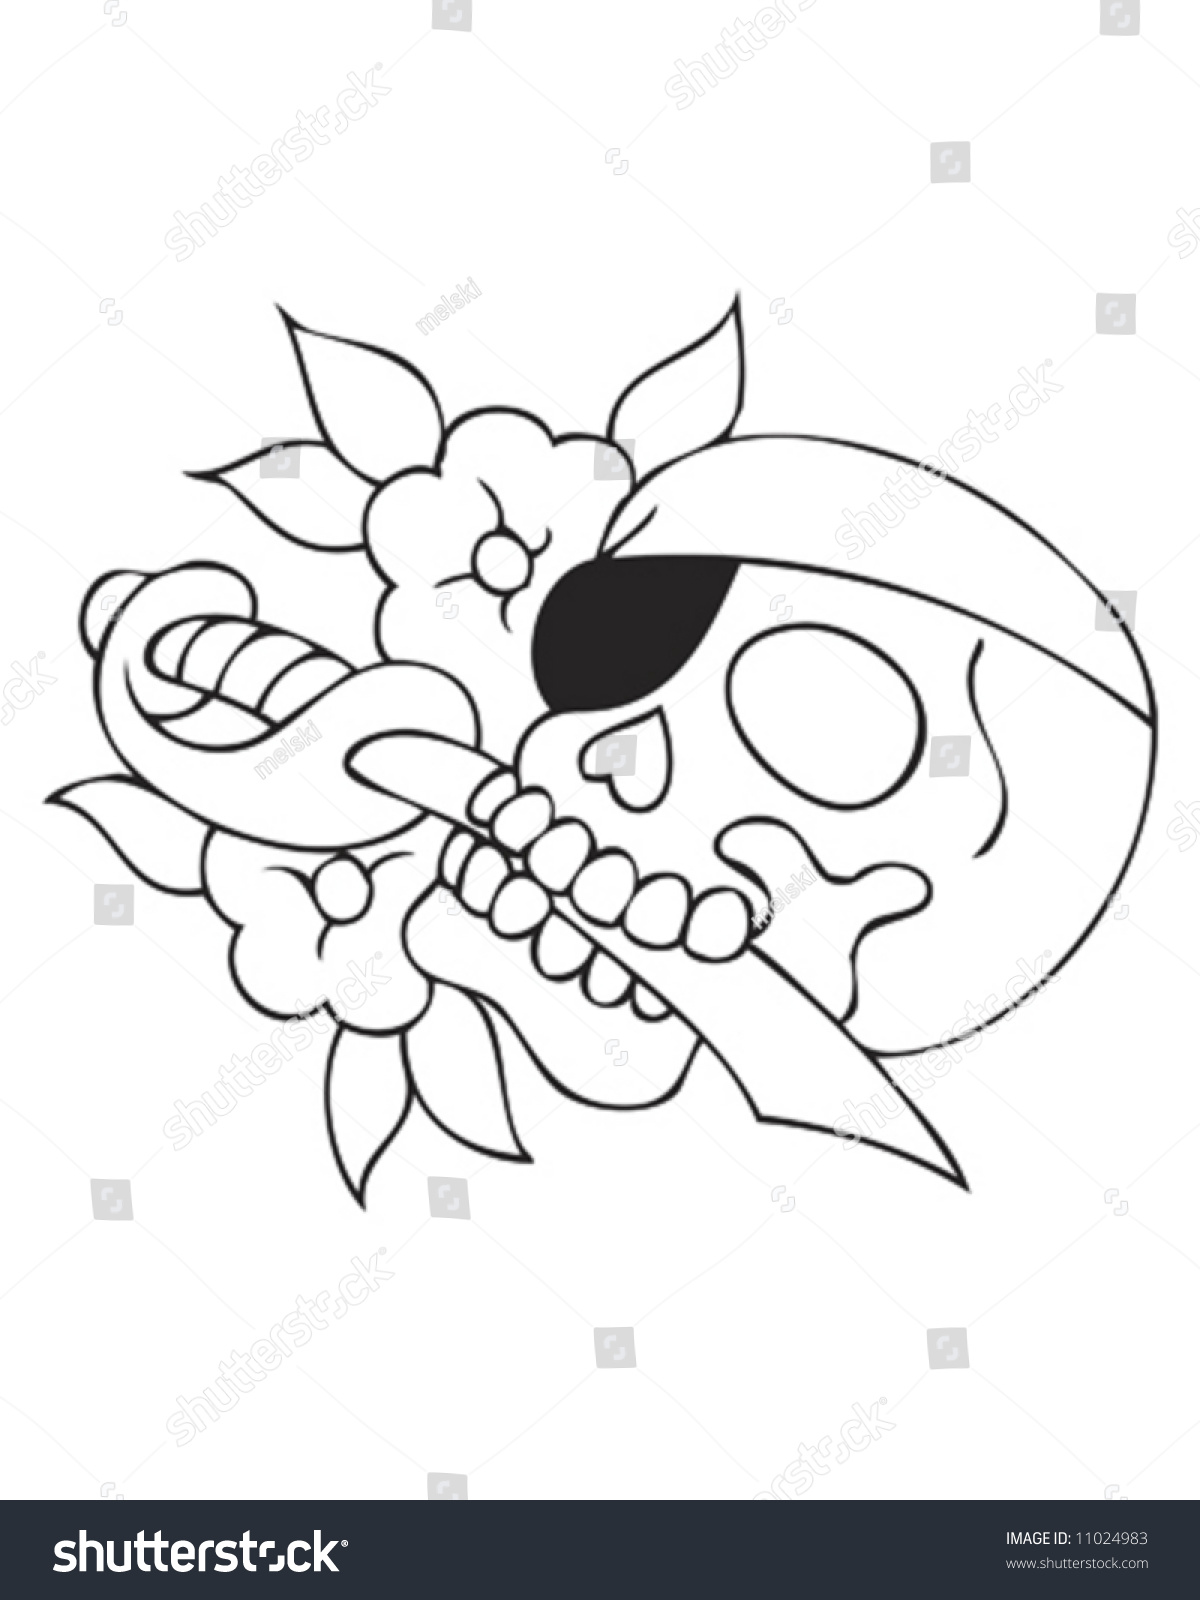 pirate skull tattoo outline stock vector 11024983 shutterstock